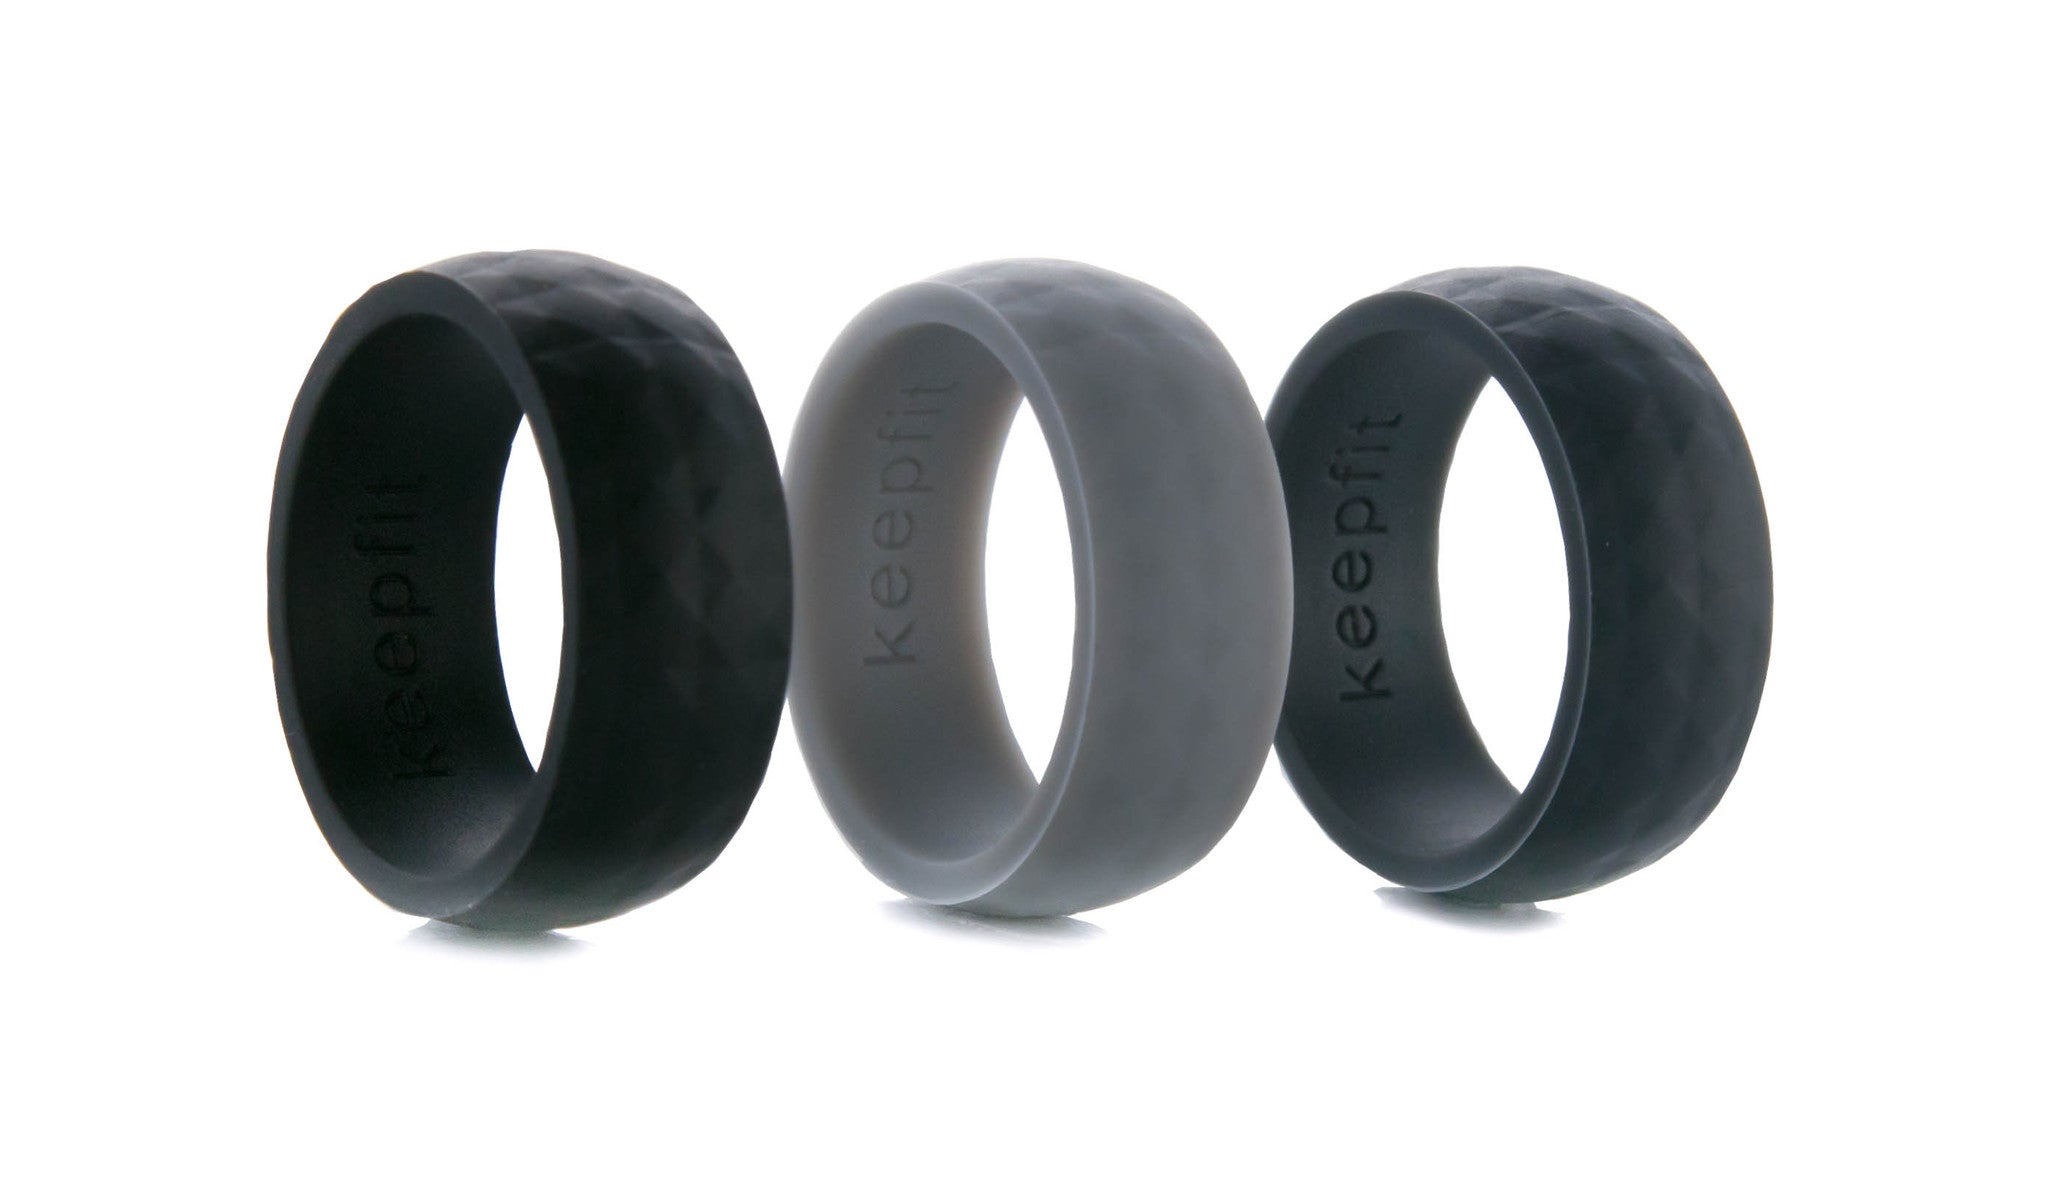 Mens Silicone Wedding Ring Modern Design Set of 3 KeepFit Products